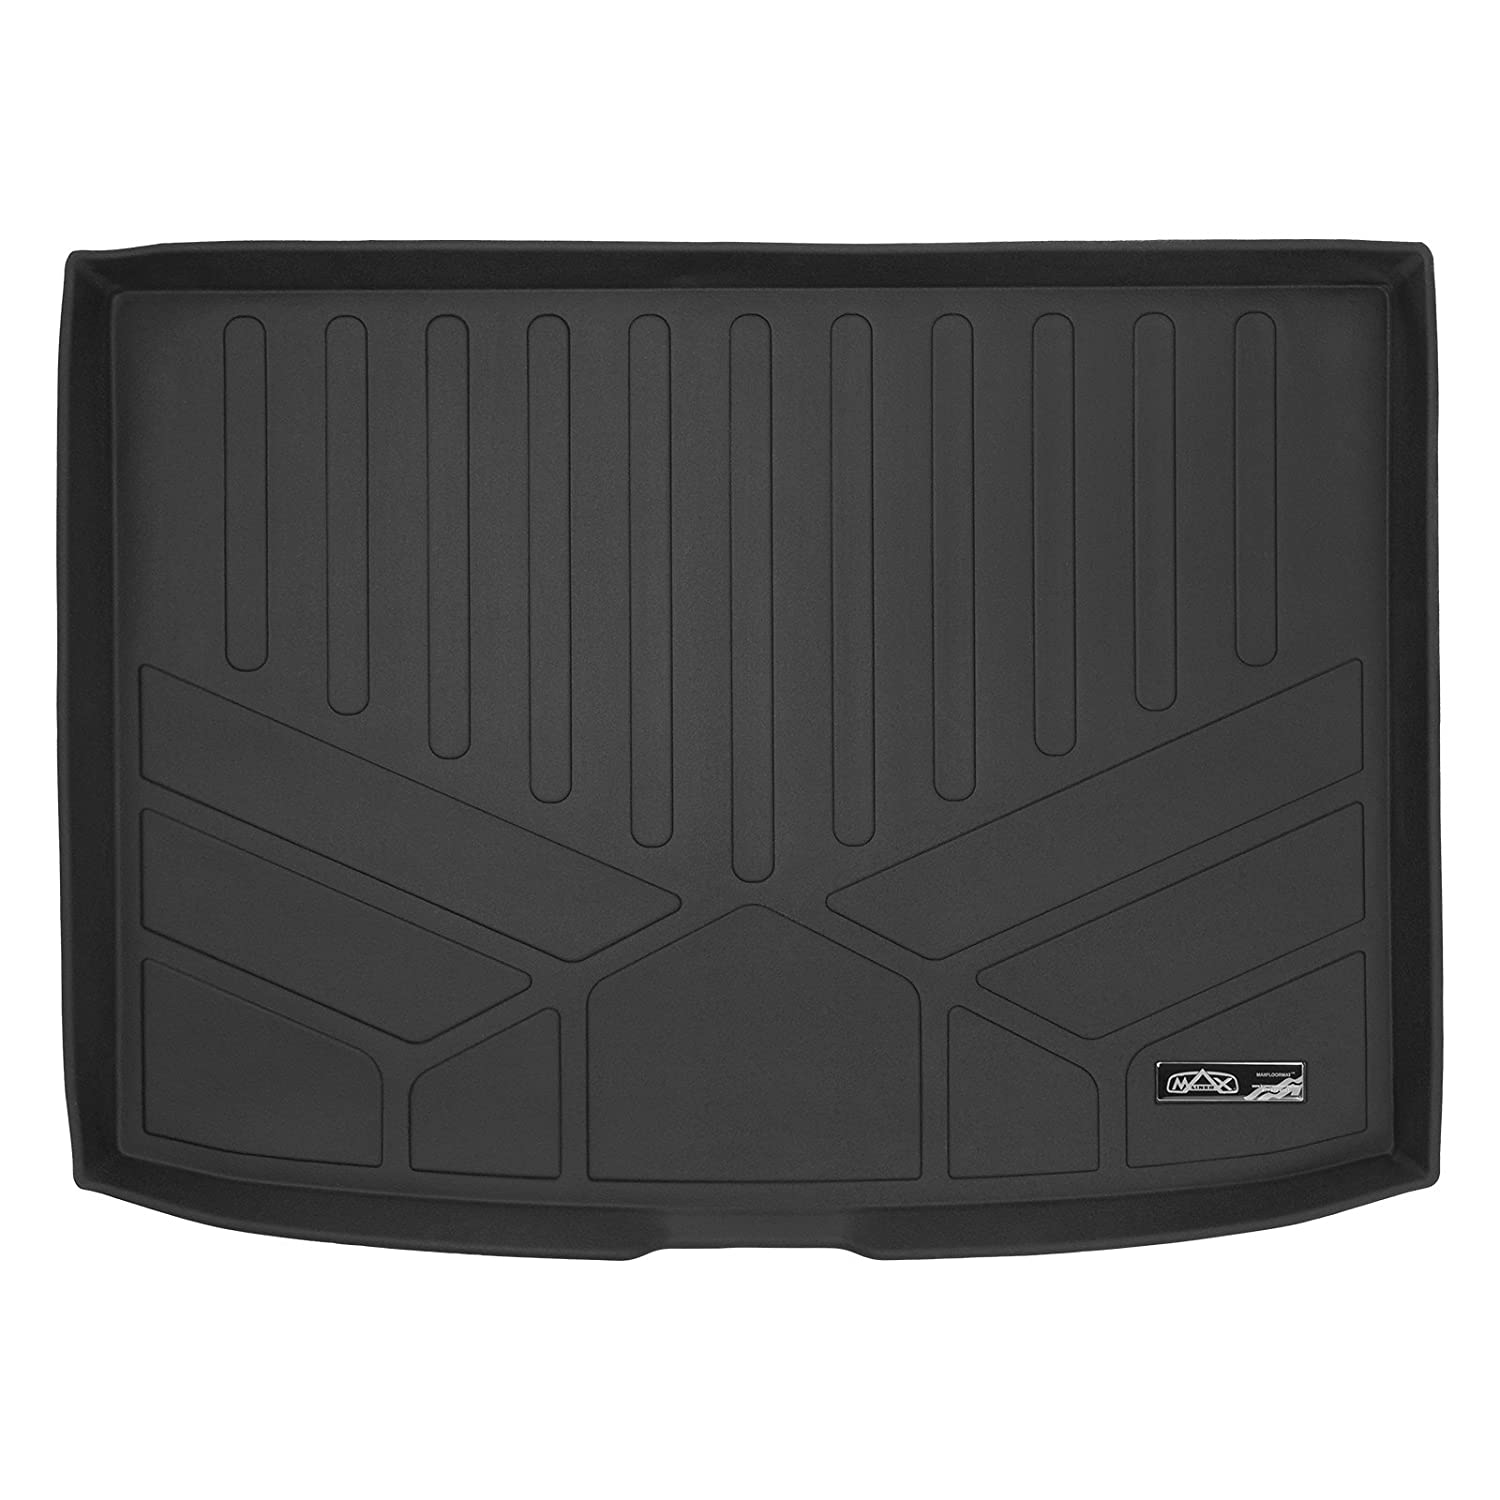 SMARTLINER All Weather Cargo Liner Floor Mat Black for 2017-2018 Kia NIRO (No Plug-in Hybrid Models) MAXLINER D0264